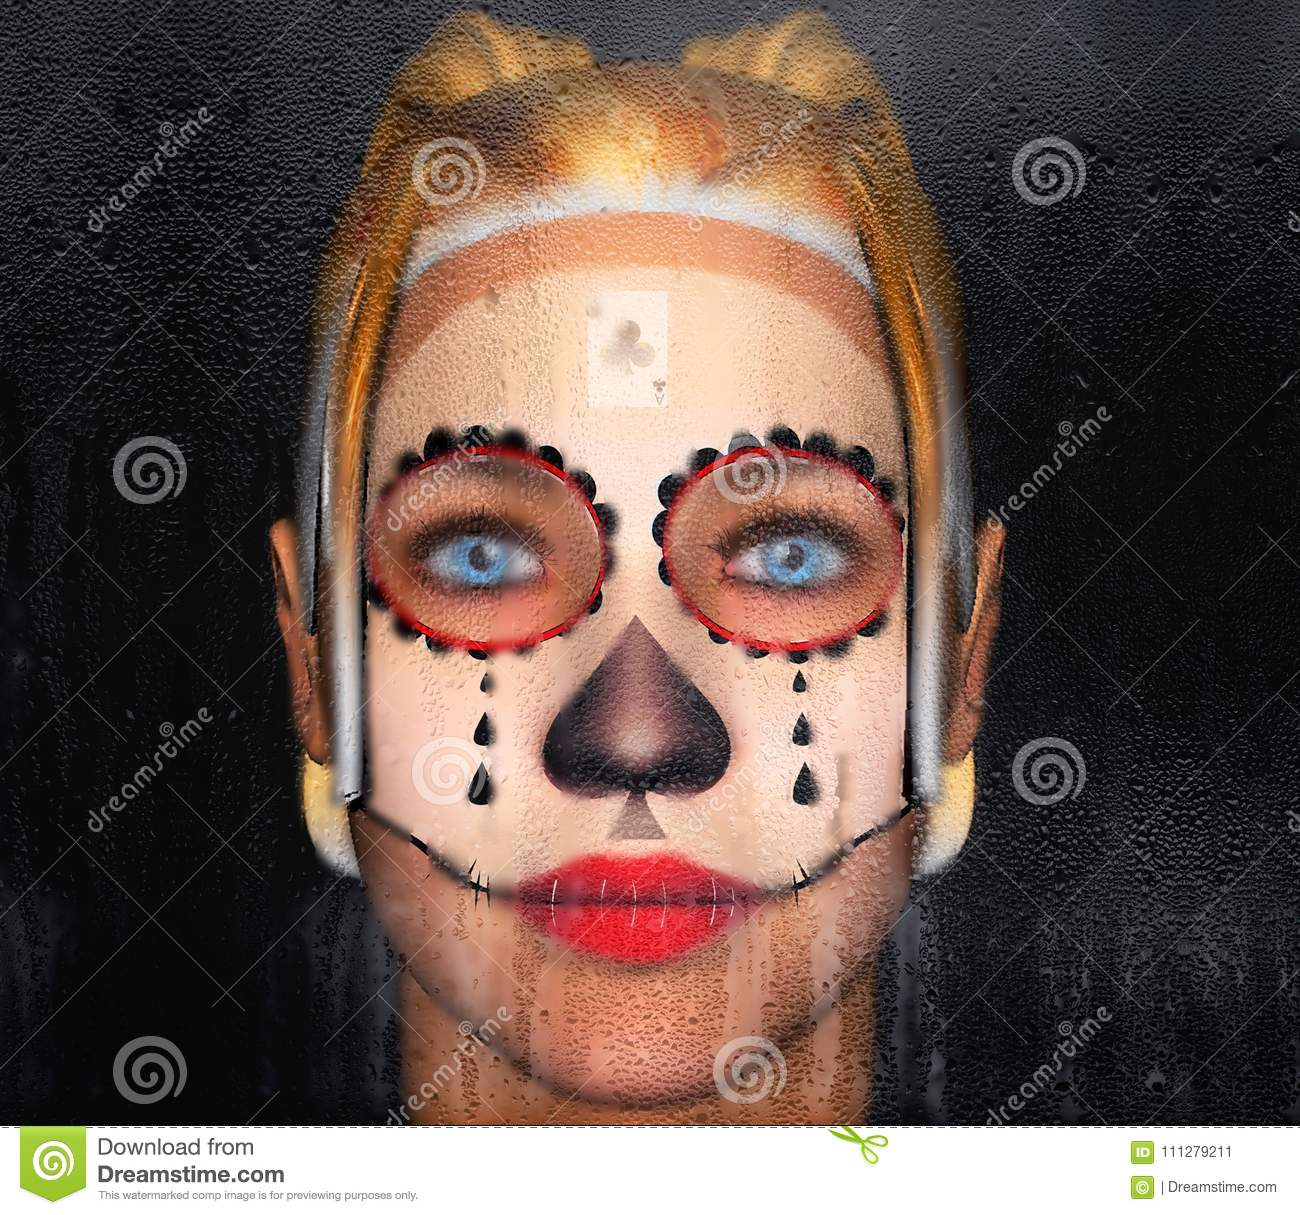 bca61c972cd11 The girl behind the glass with a painted face tattoo Chicano. 3D  Illustration.